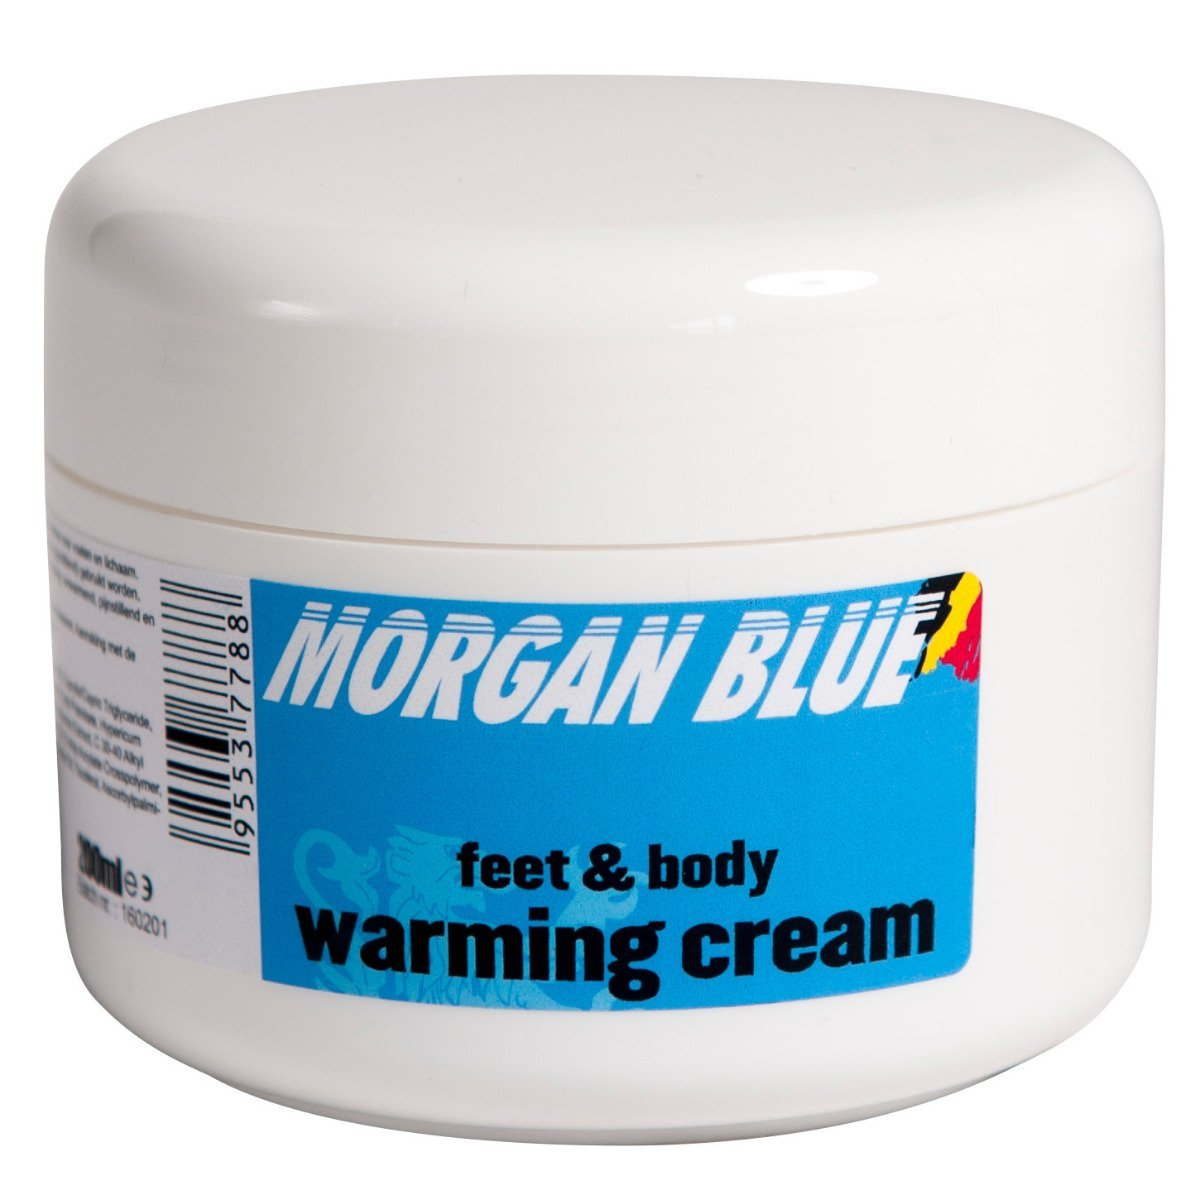 Morgan Blue Cycle Clothing > Embrocation & Cream MORGAN BLUE WARMING CREAM 200cc TUB